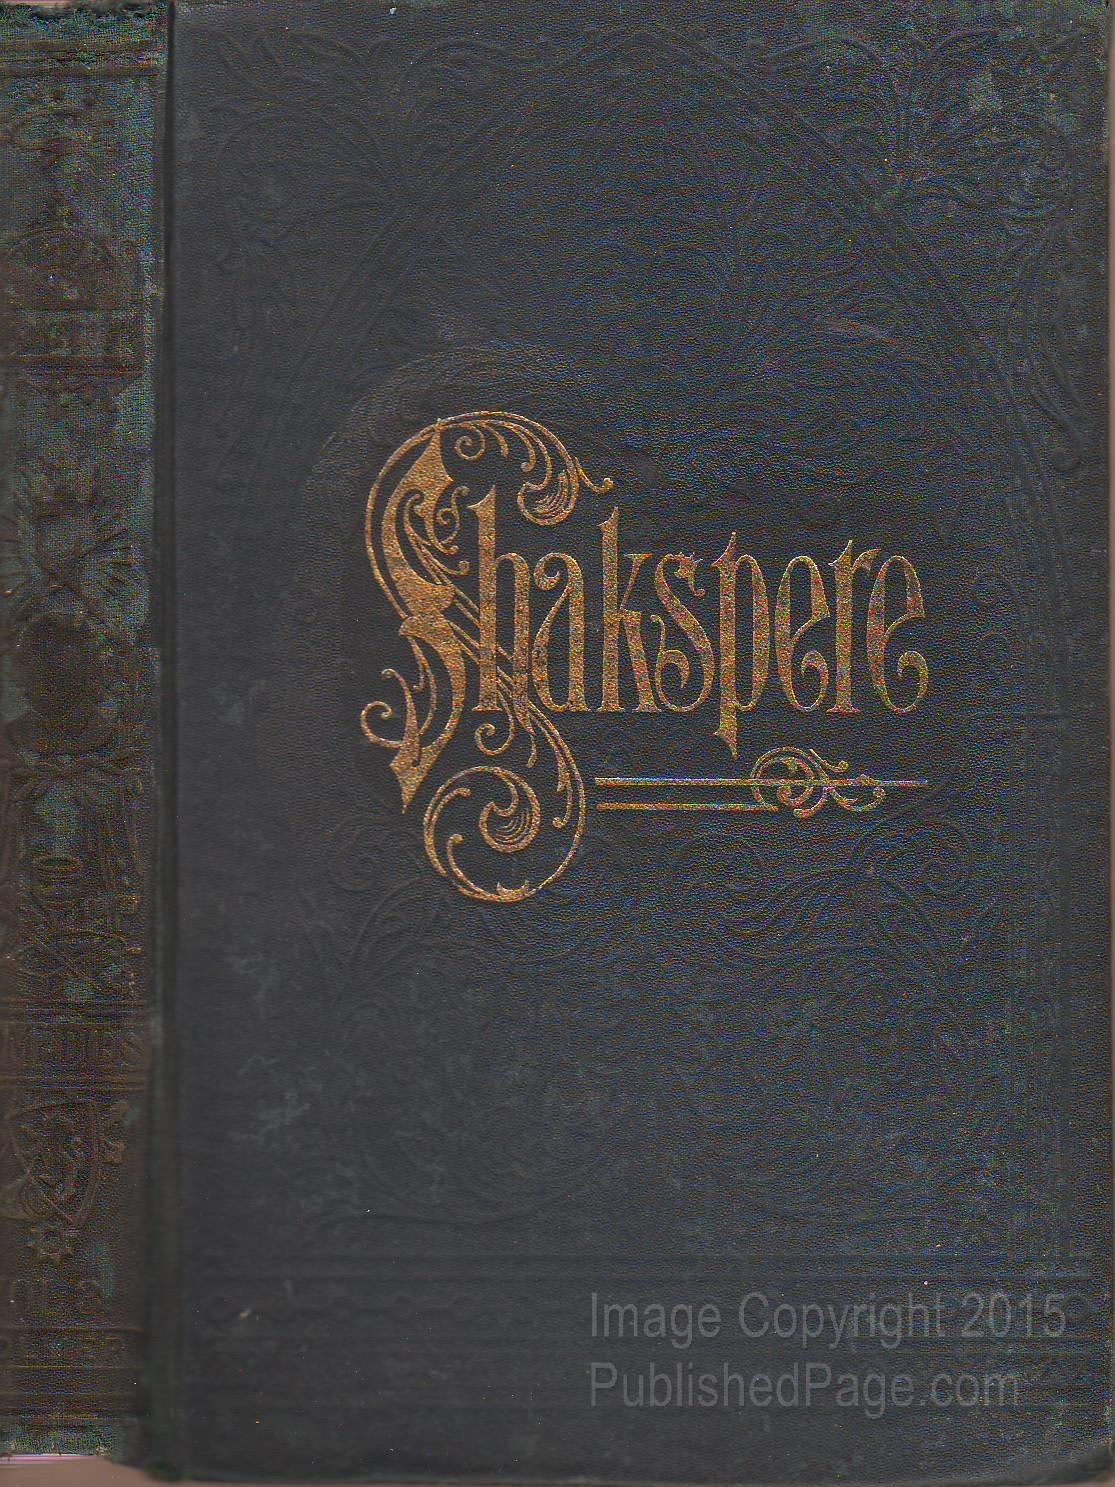 william shakespeare edited by charles knight